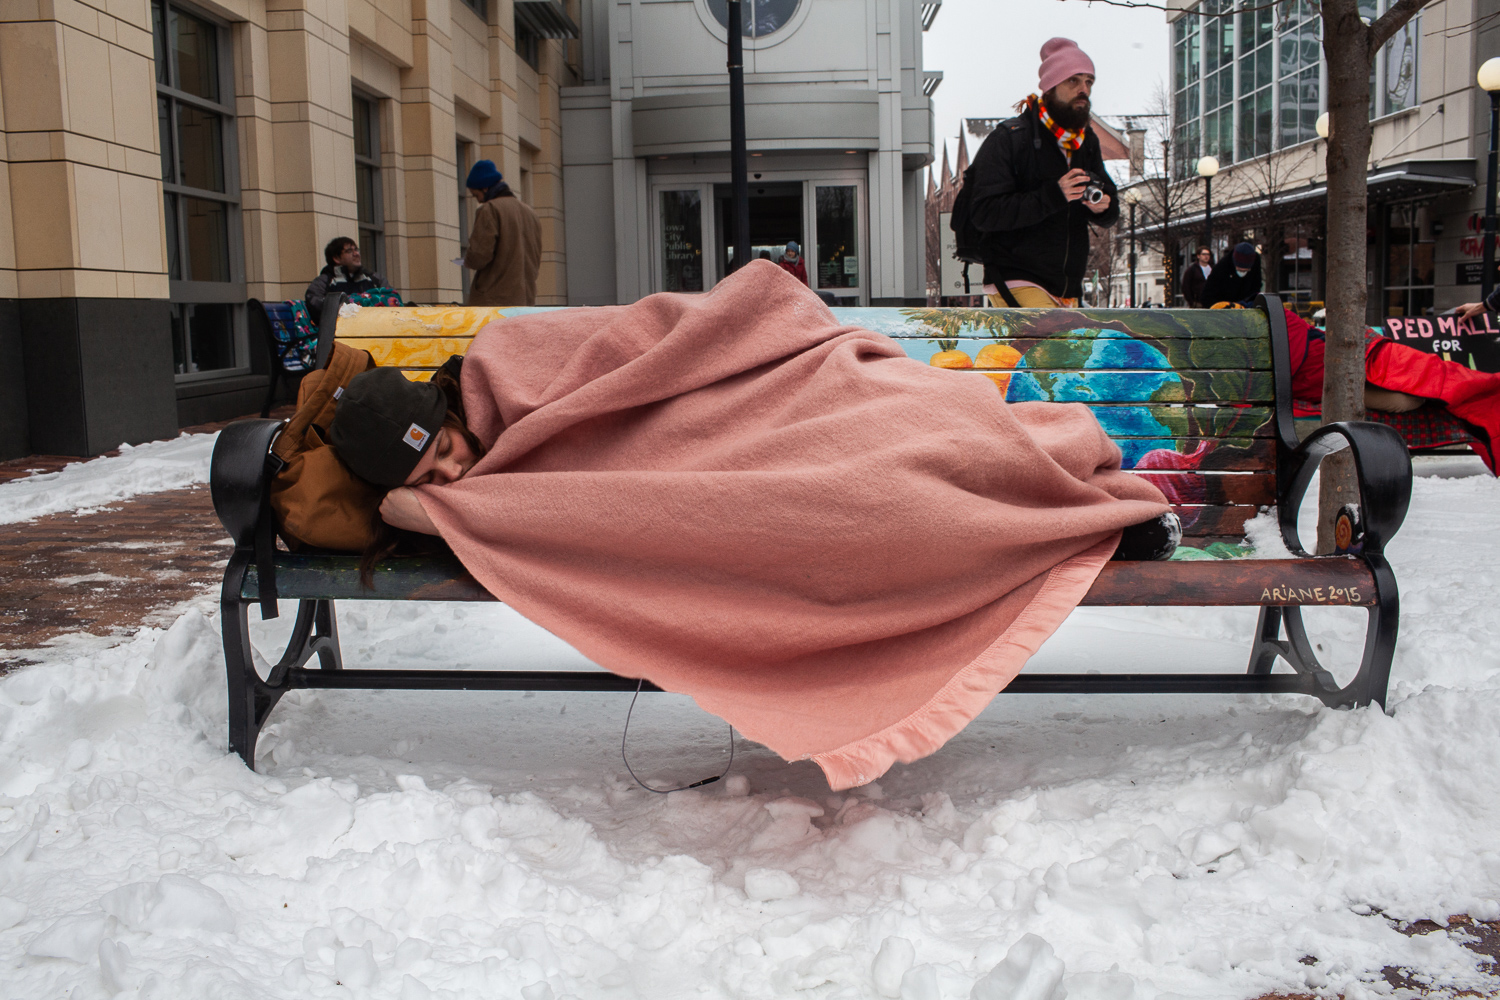 Demonstrators lay on benches during a